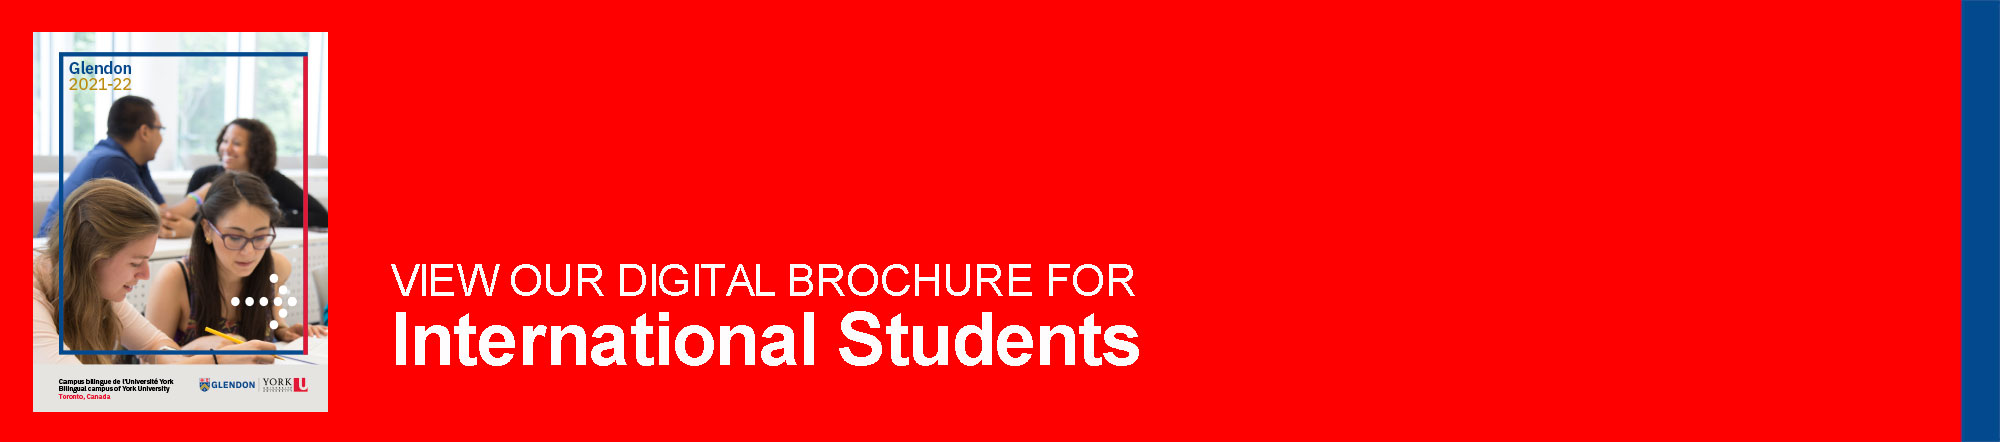 View our digital brochure for international students